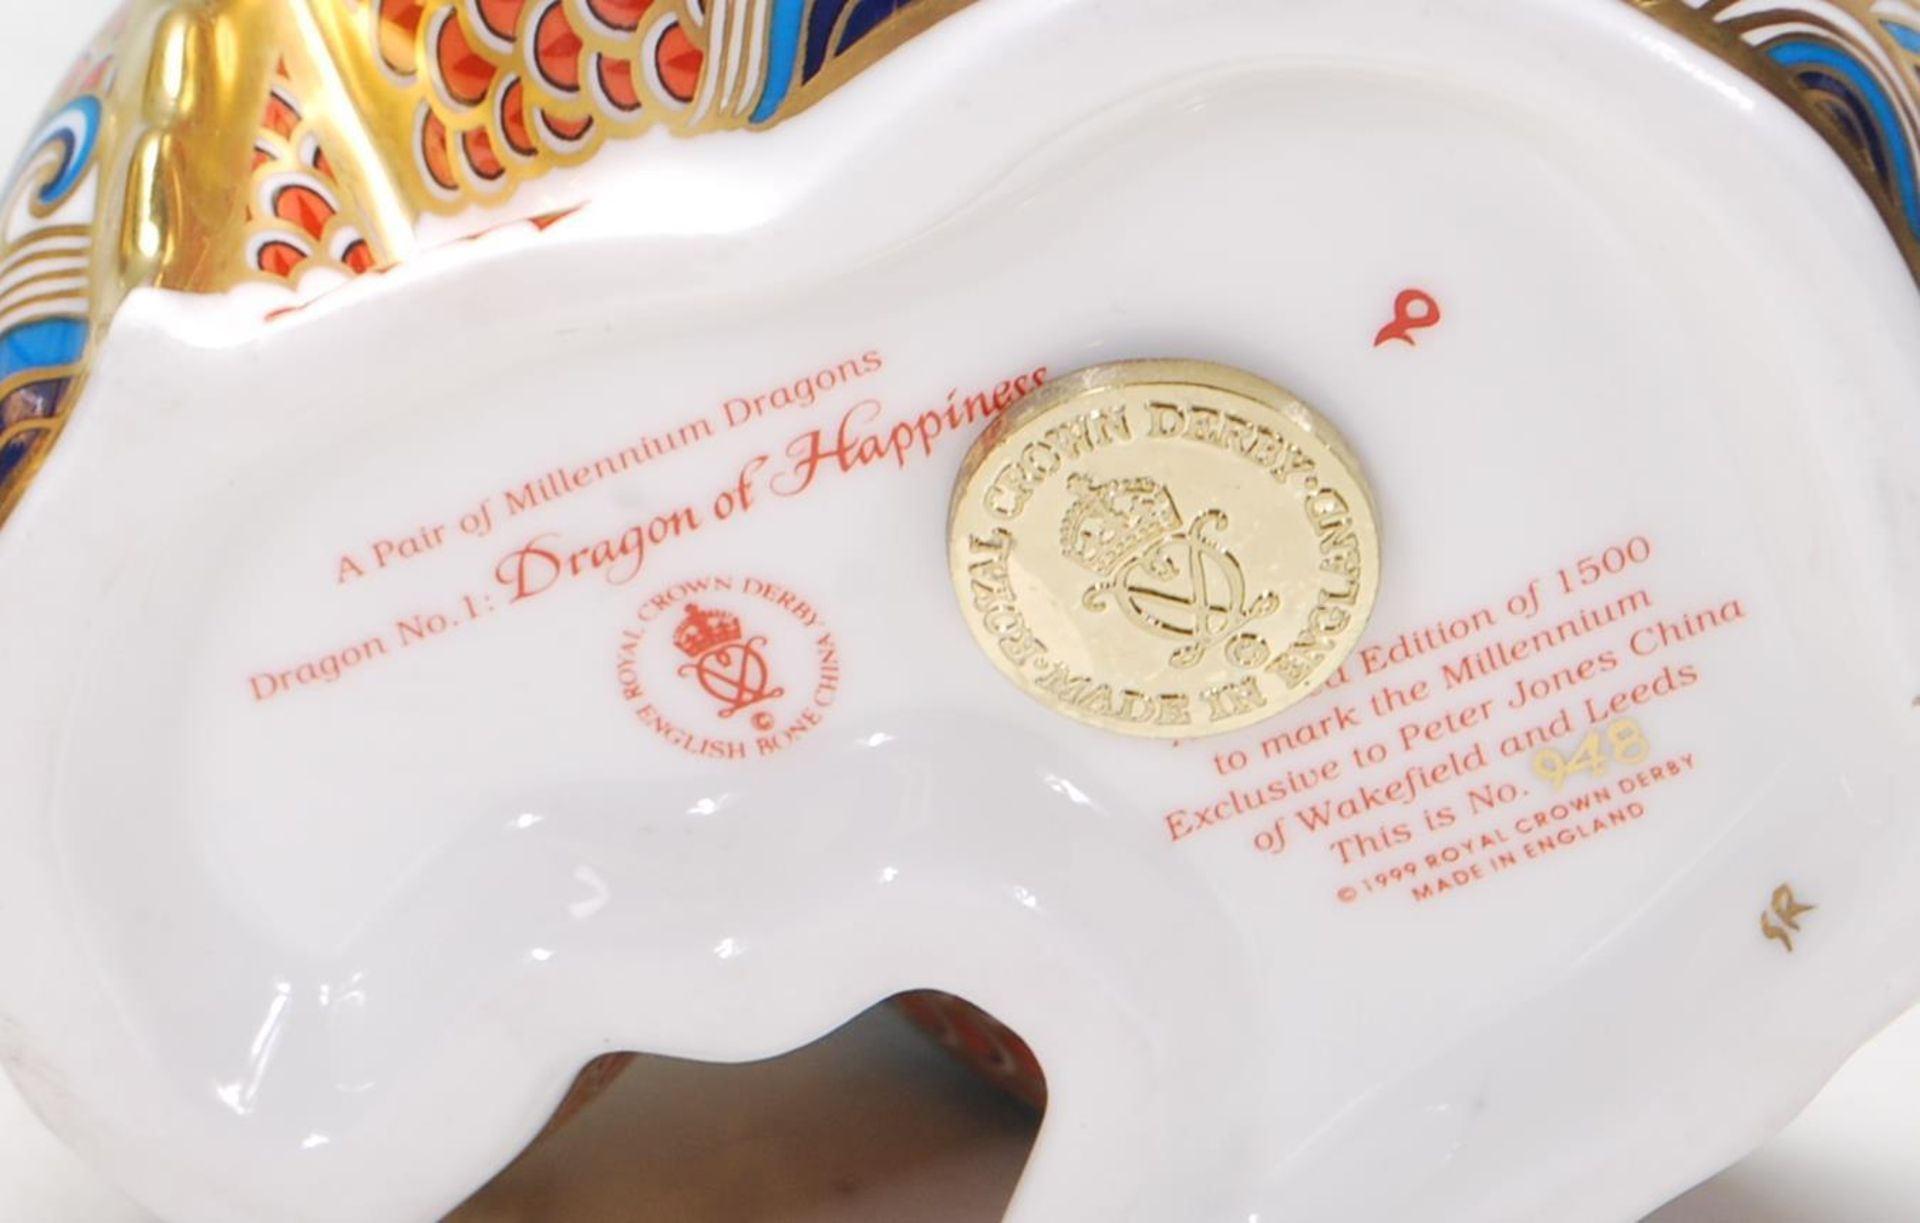 TWO ROYAL DOULTON PAPERWEIGHTS - Image 7 of 7